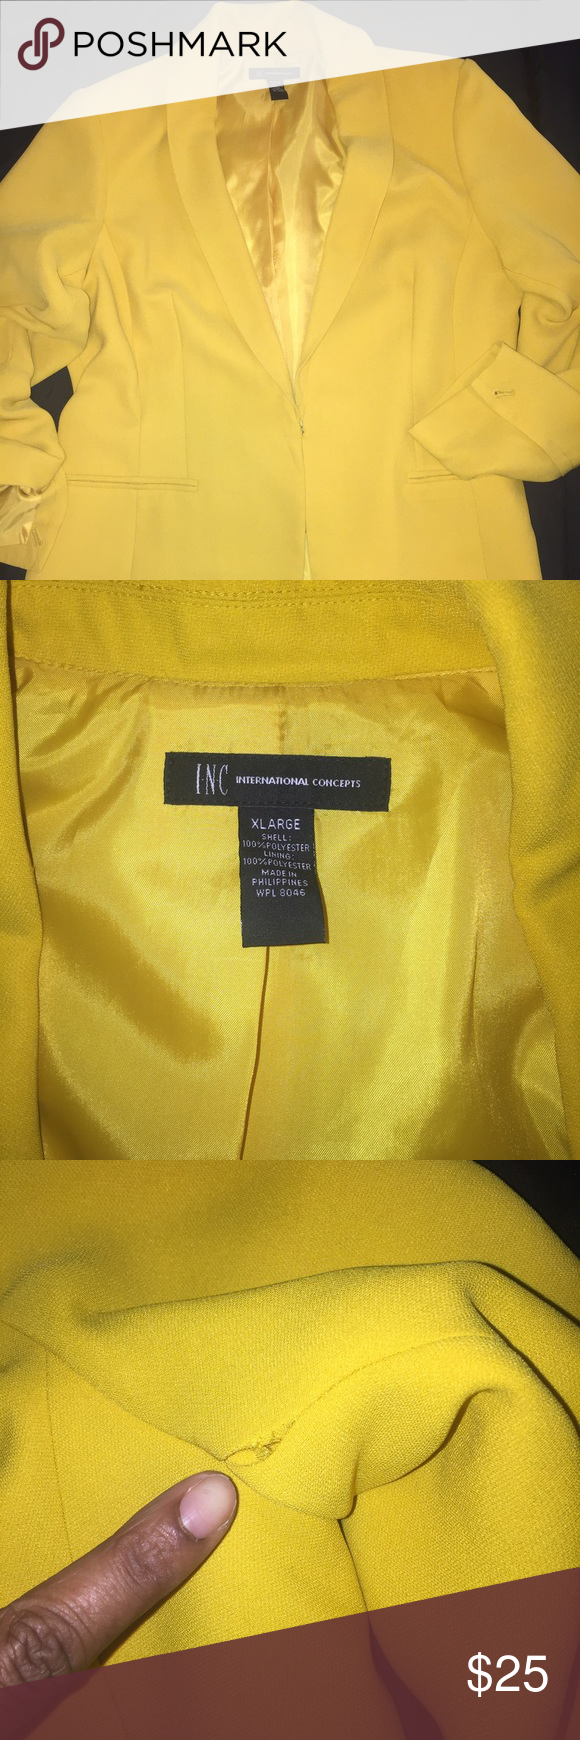 Jacket Missing 1 button on the cuff (picture pointing to it) also the stitching is slightly coming undone ( picture pointing to it). Your local seamstress or cleaner will be able to fix this. INC International Concepts Jackets & Coats Blazers